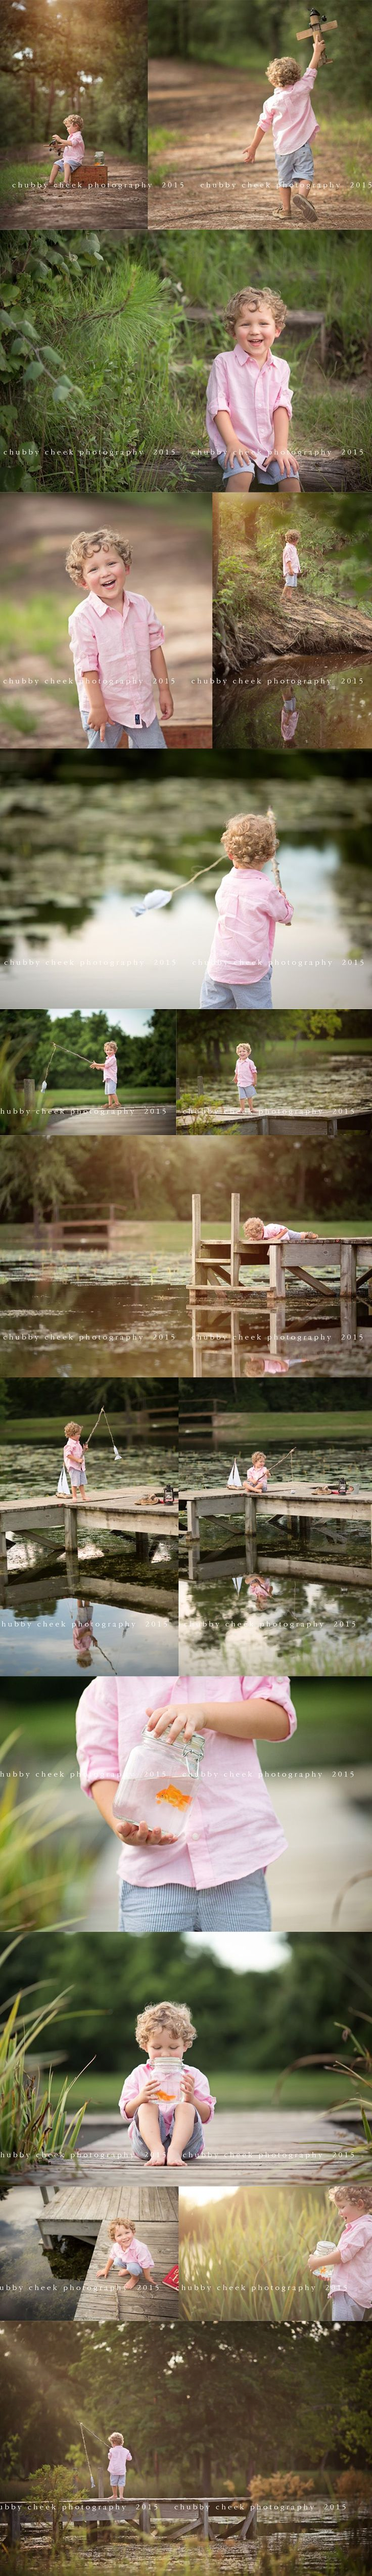 Goldie is back … the woodlands tx child photographer chubby cheek photography